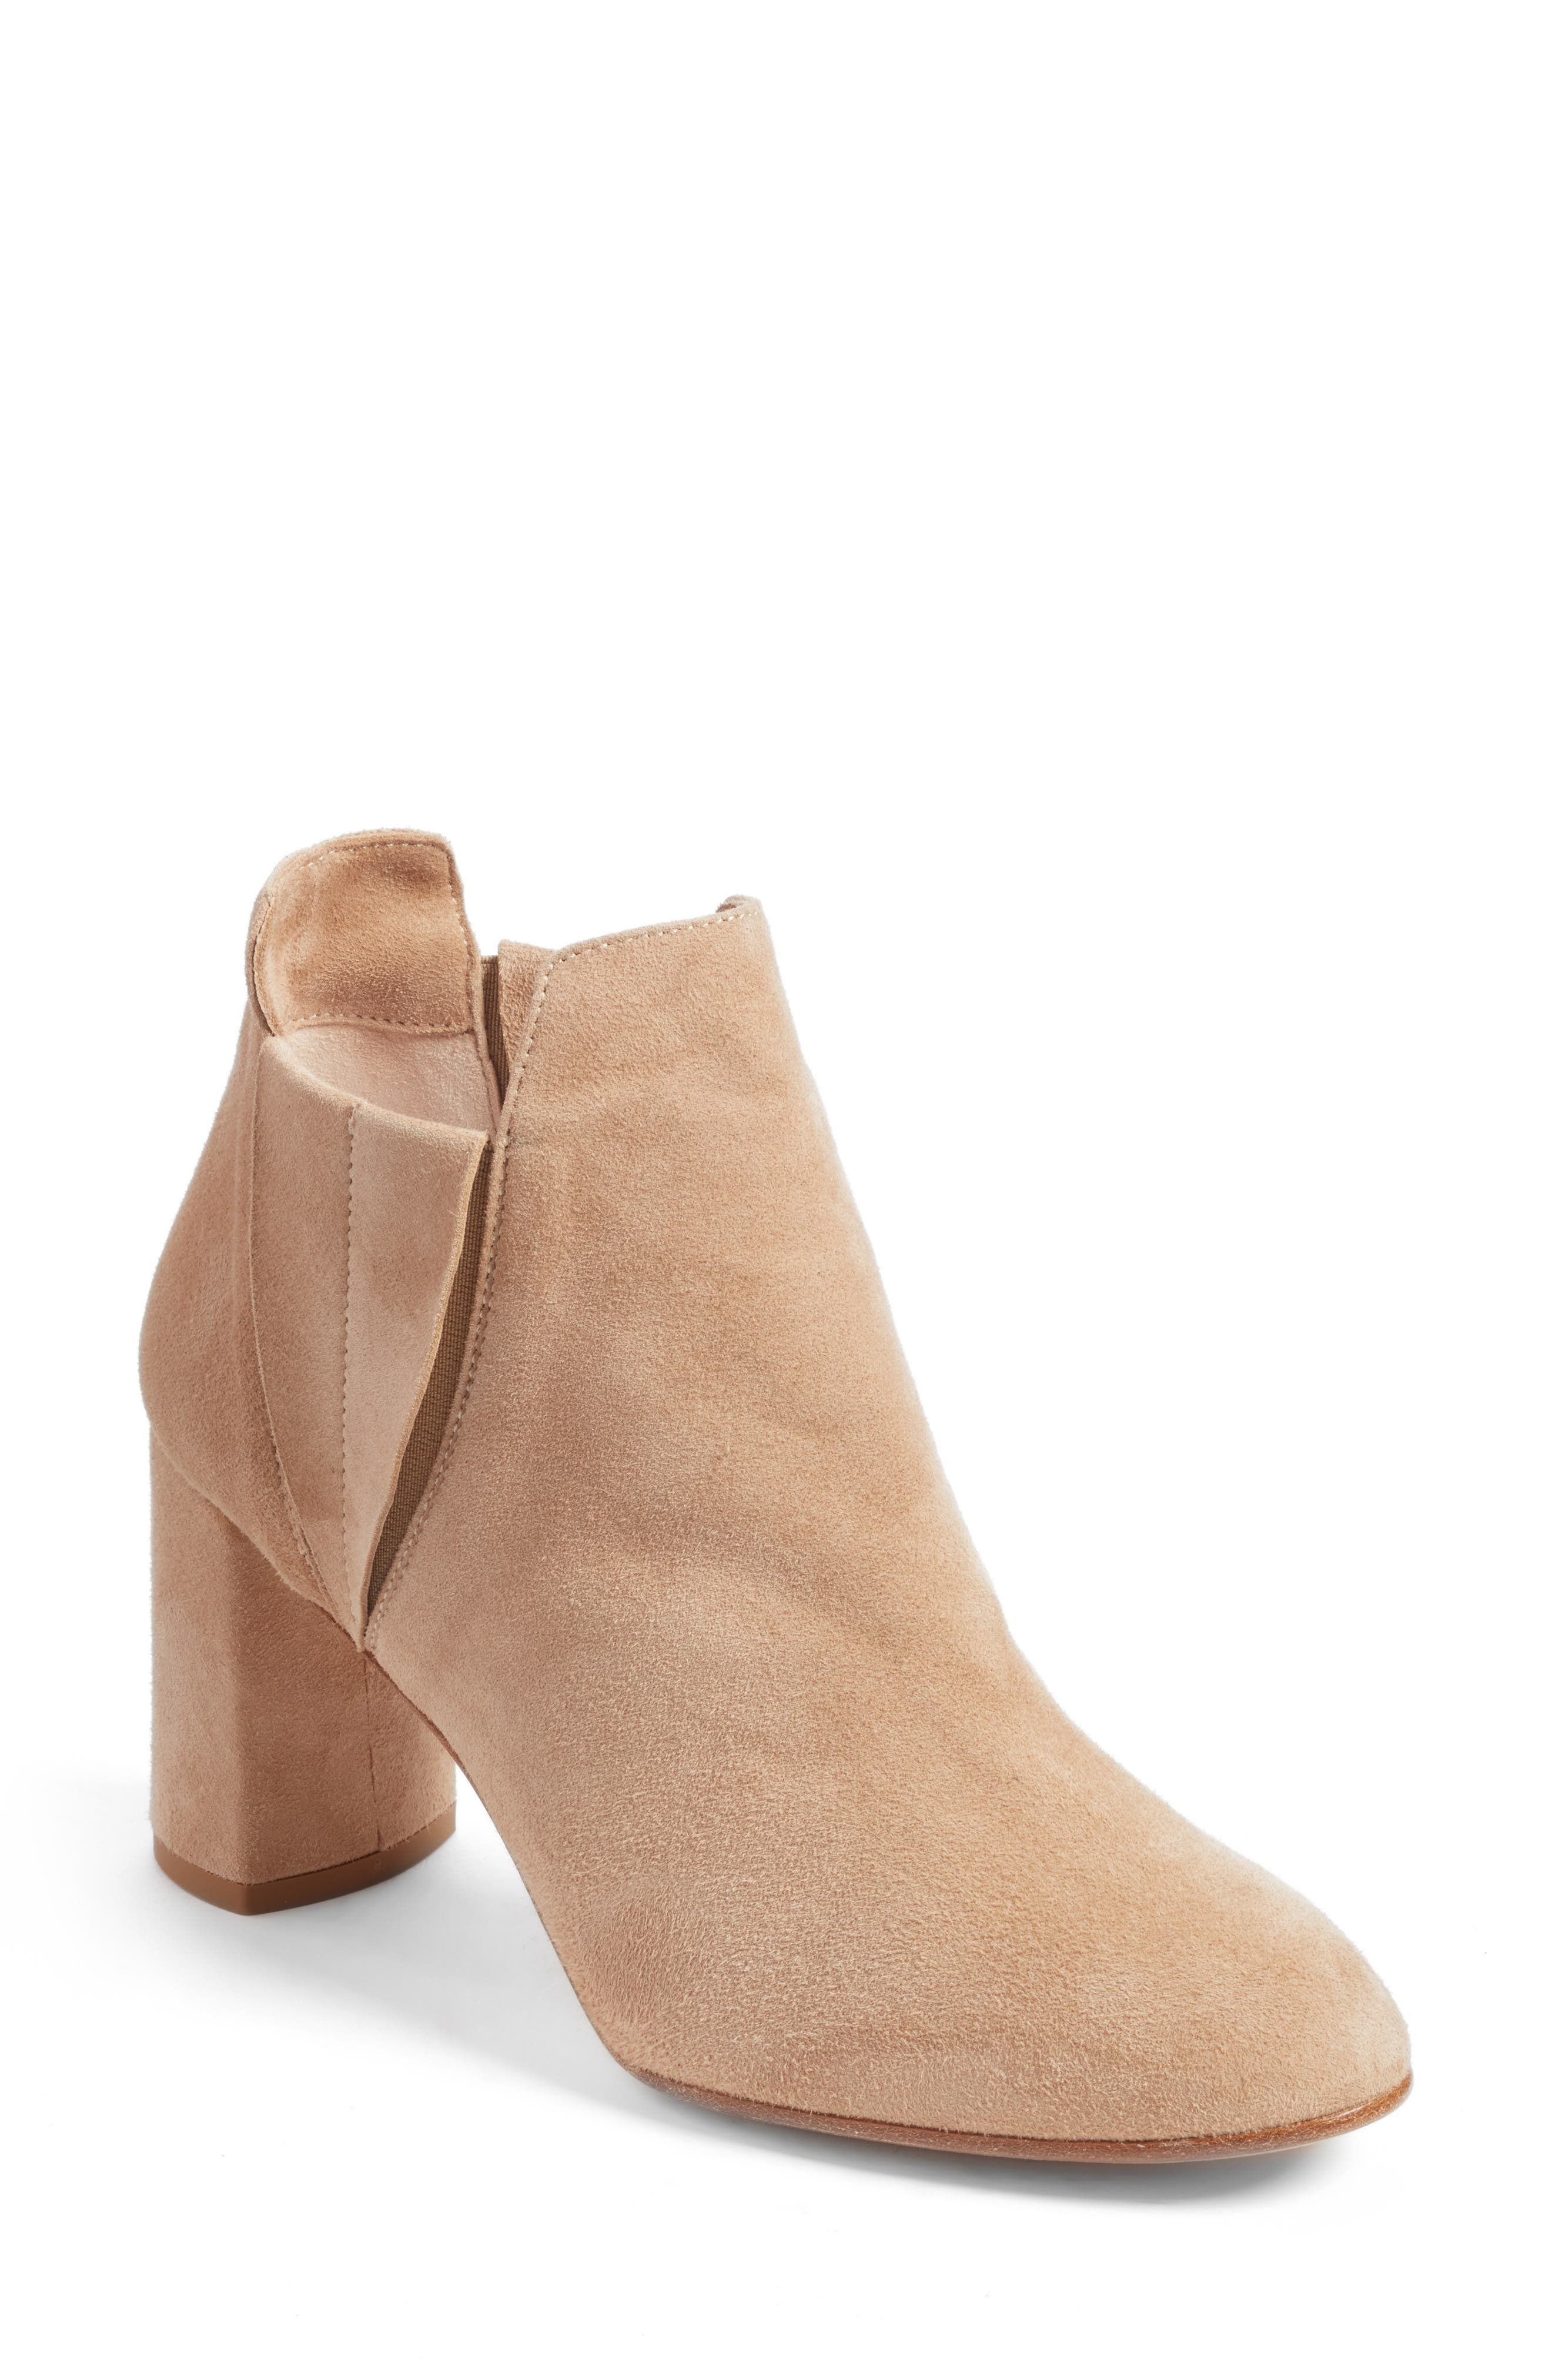 Nadina Chelsea Bootie,                         Main,                         color, 250